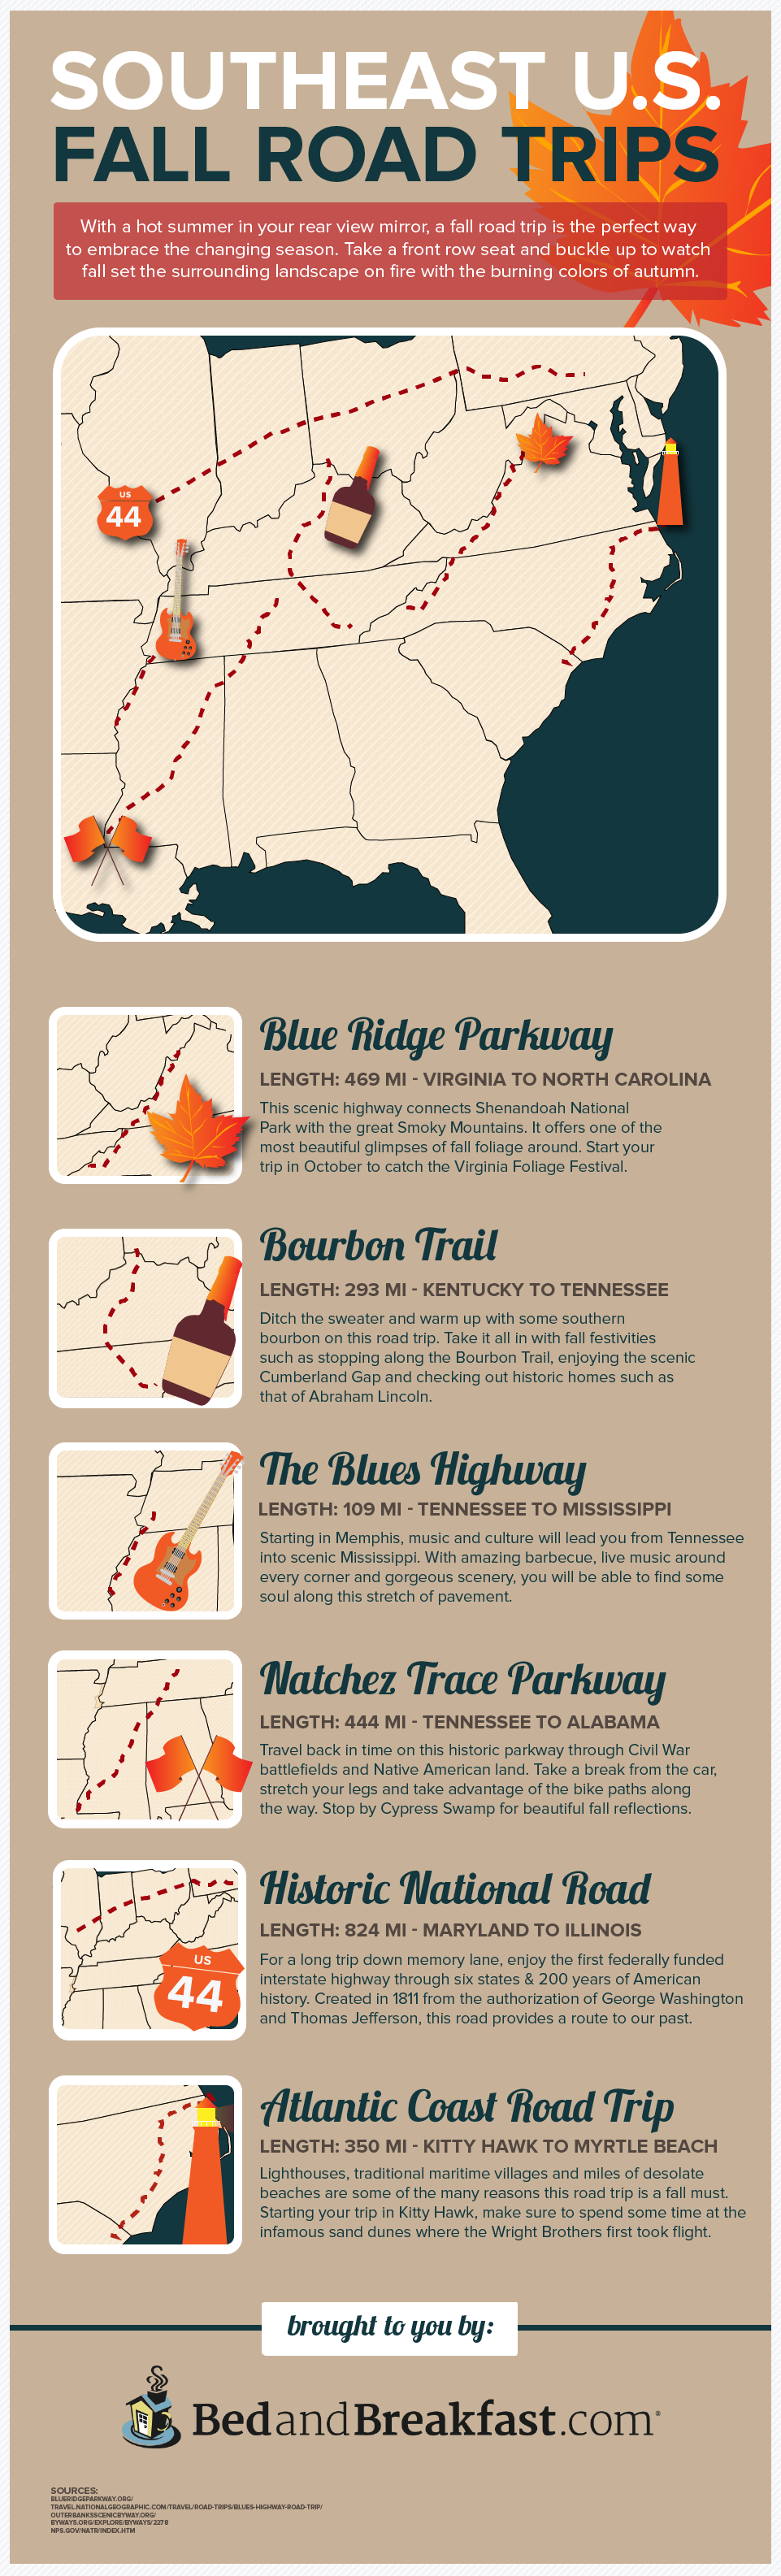 Fall Road Trips Infographic